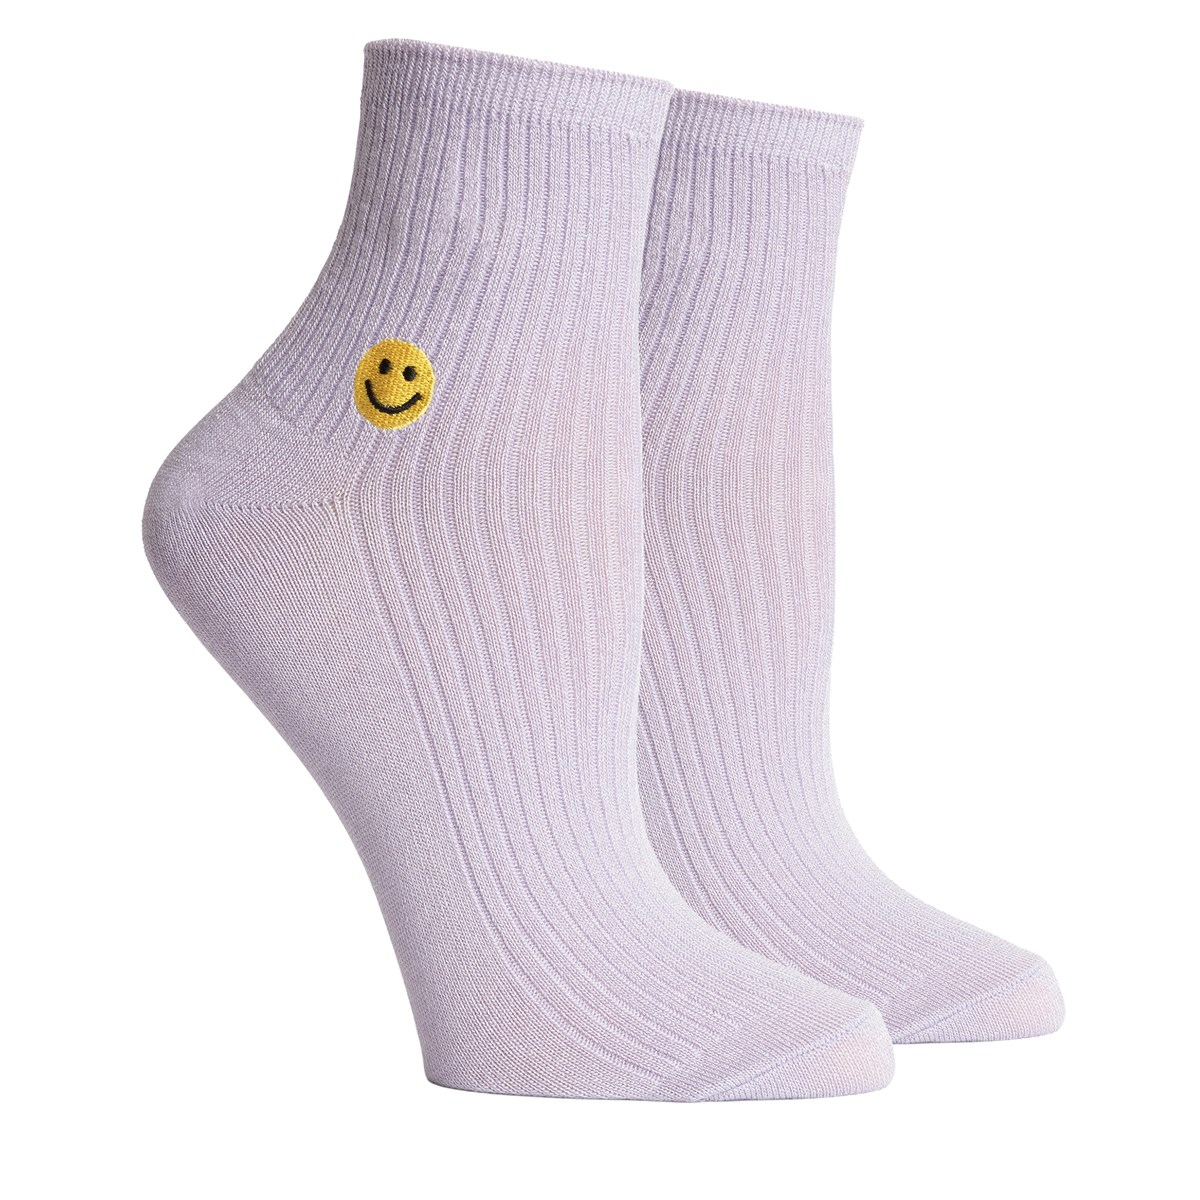 Women's Smiles Crew Socks in Lilac